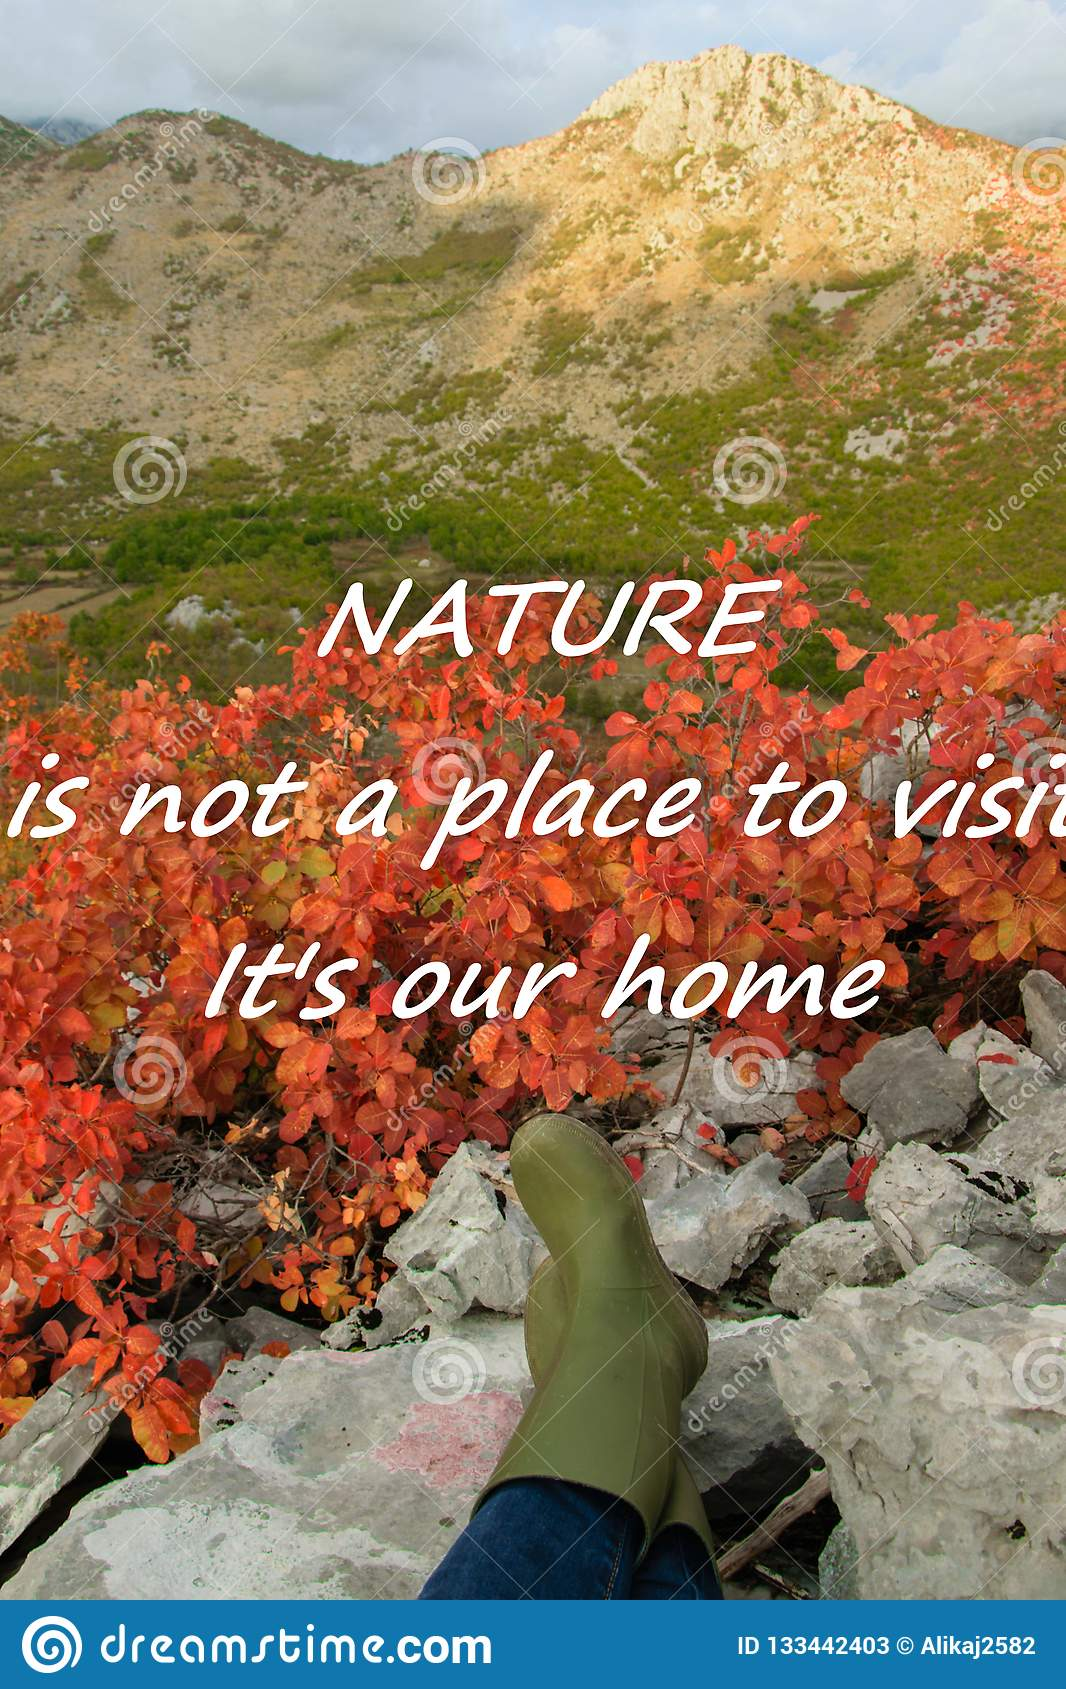 Scenic nature background with text